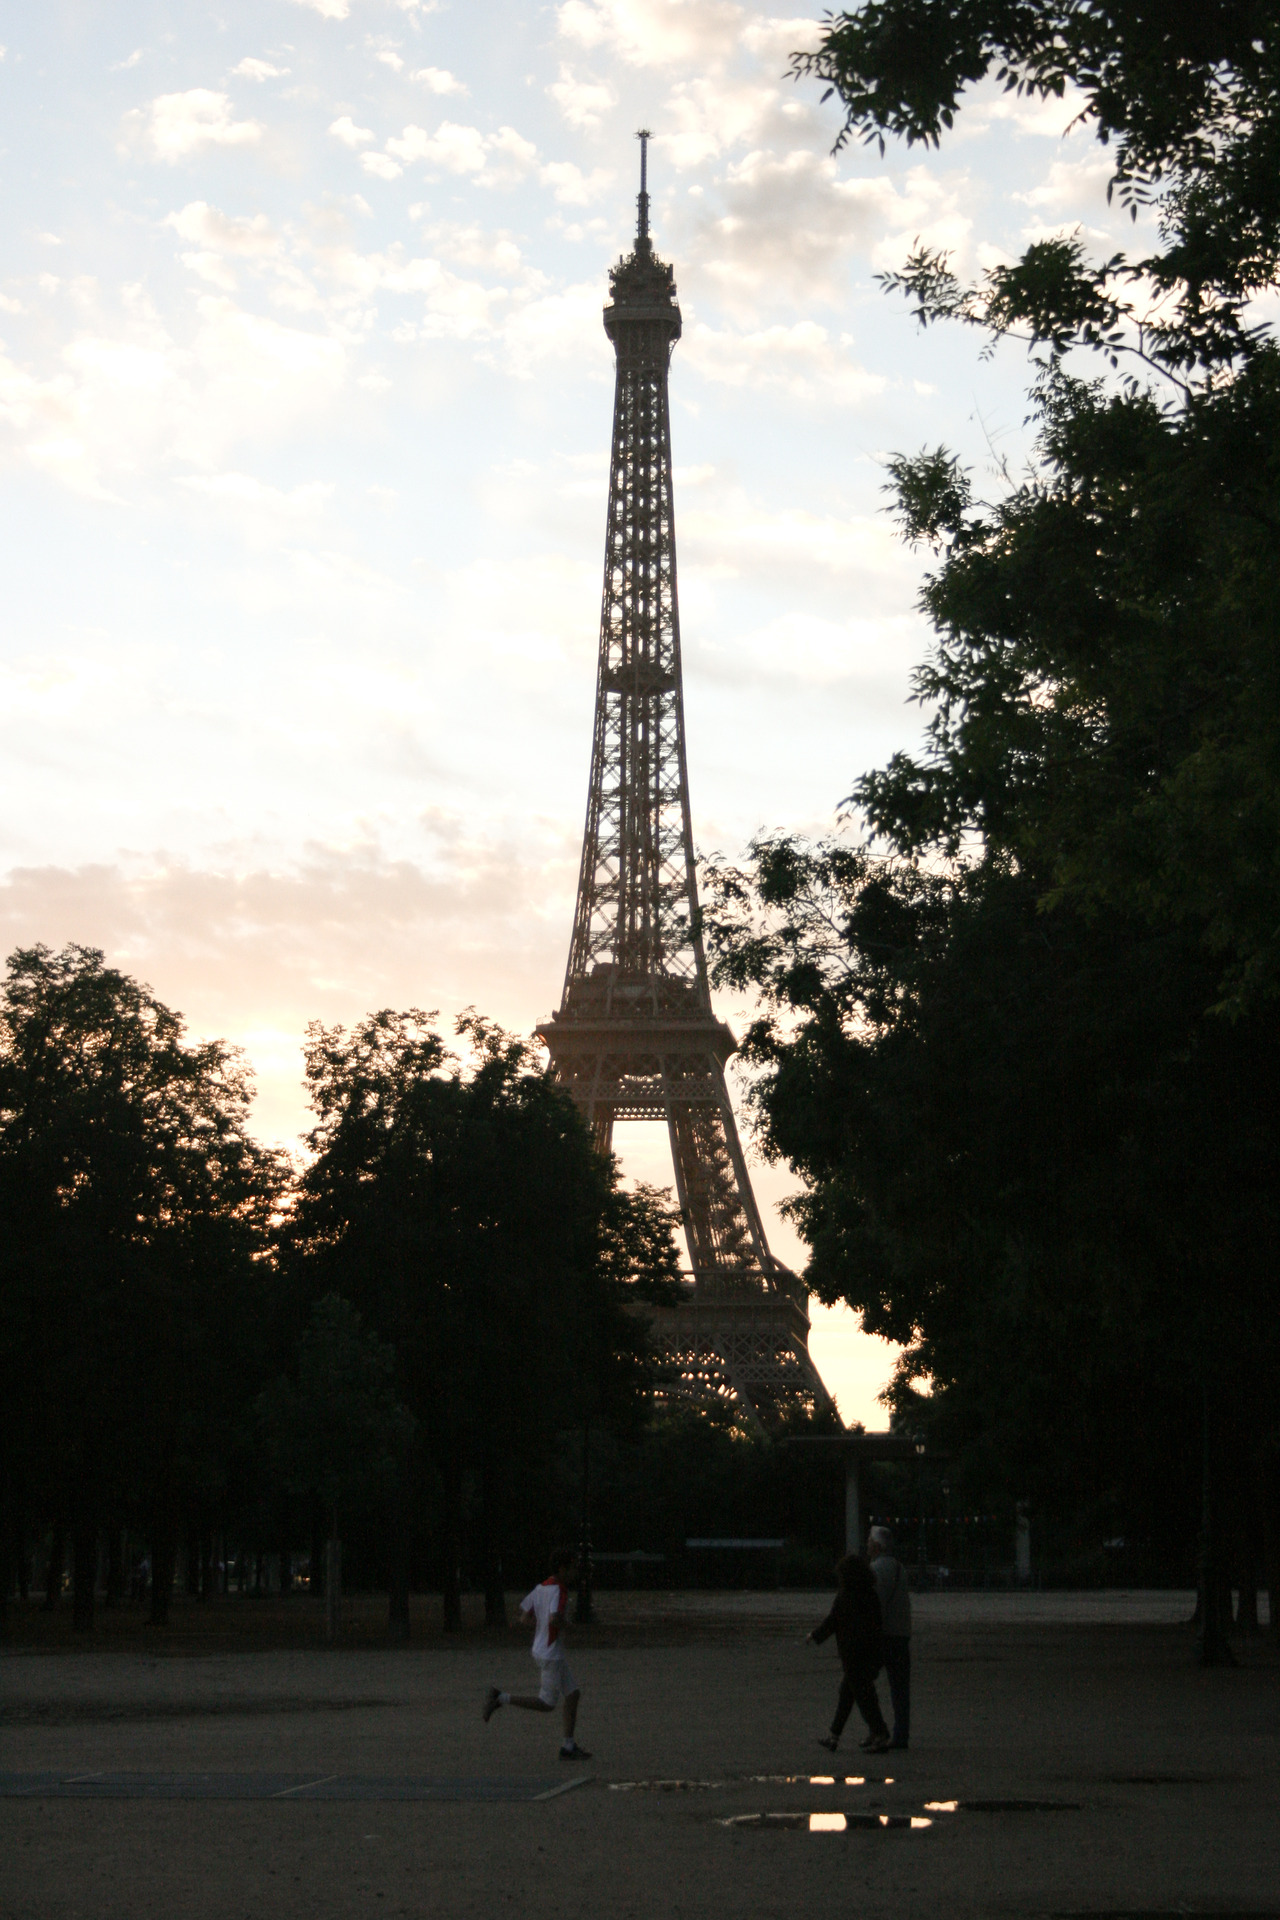 Paris, France | July 2012